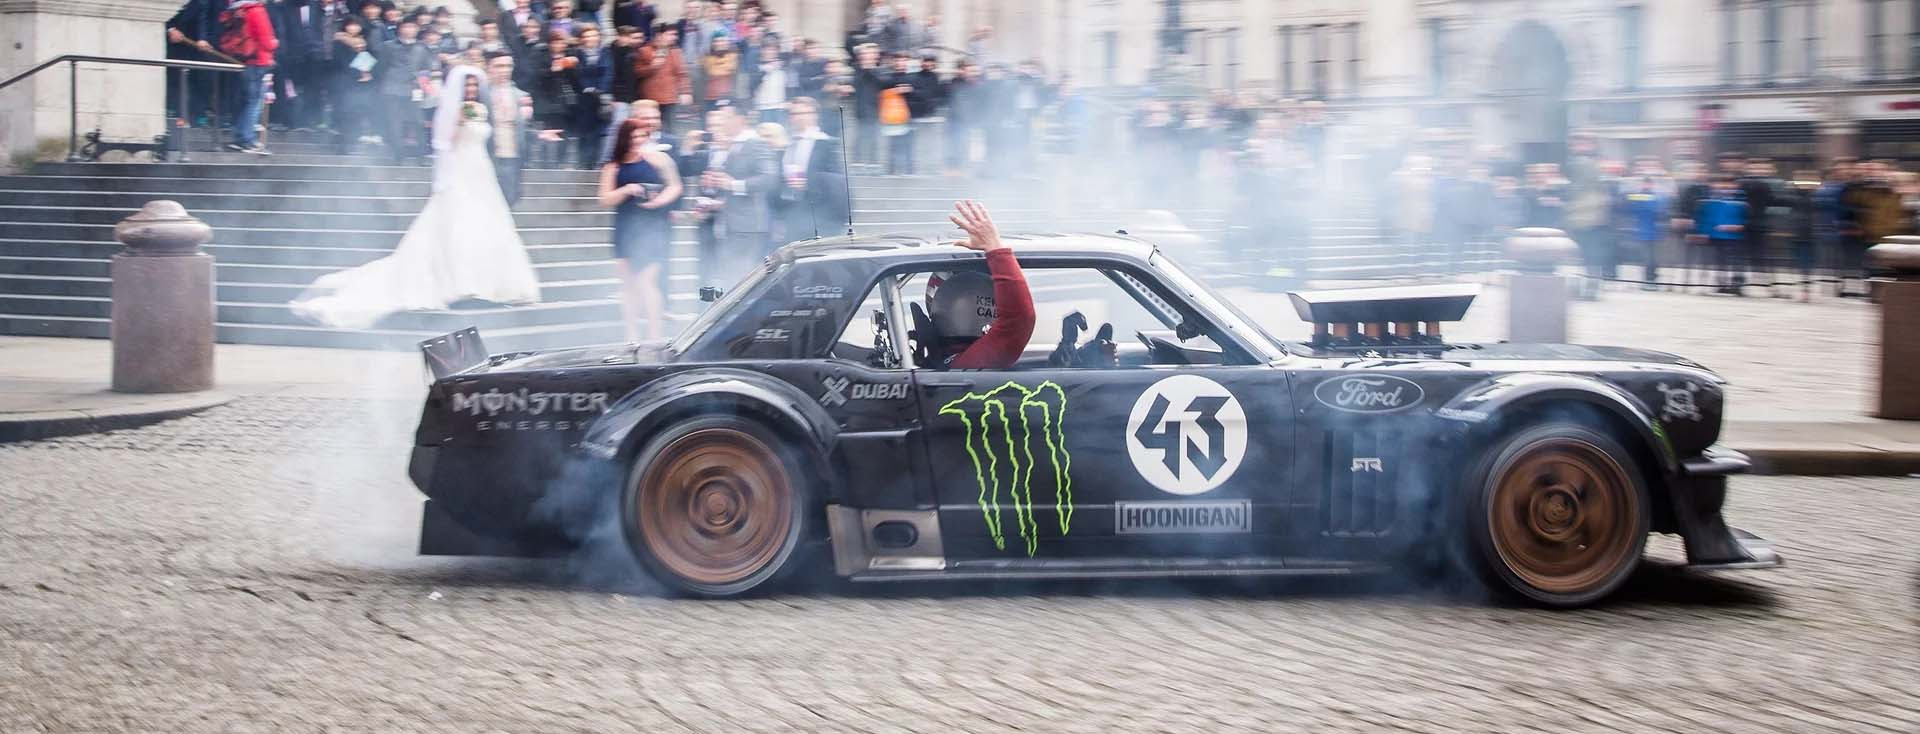 Top gears matt leblanc and ken block take a spin in the ford the streets of london were filled with tyre smoke and the roar of a v8 engine last week new top gear host matt leblanc was given a unique tour of the publicscrutiny Gallery